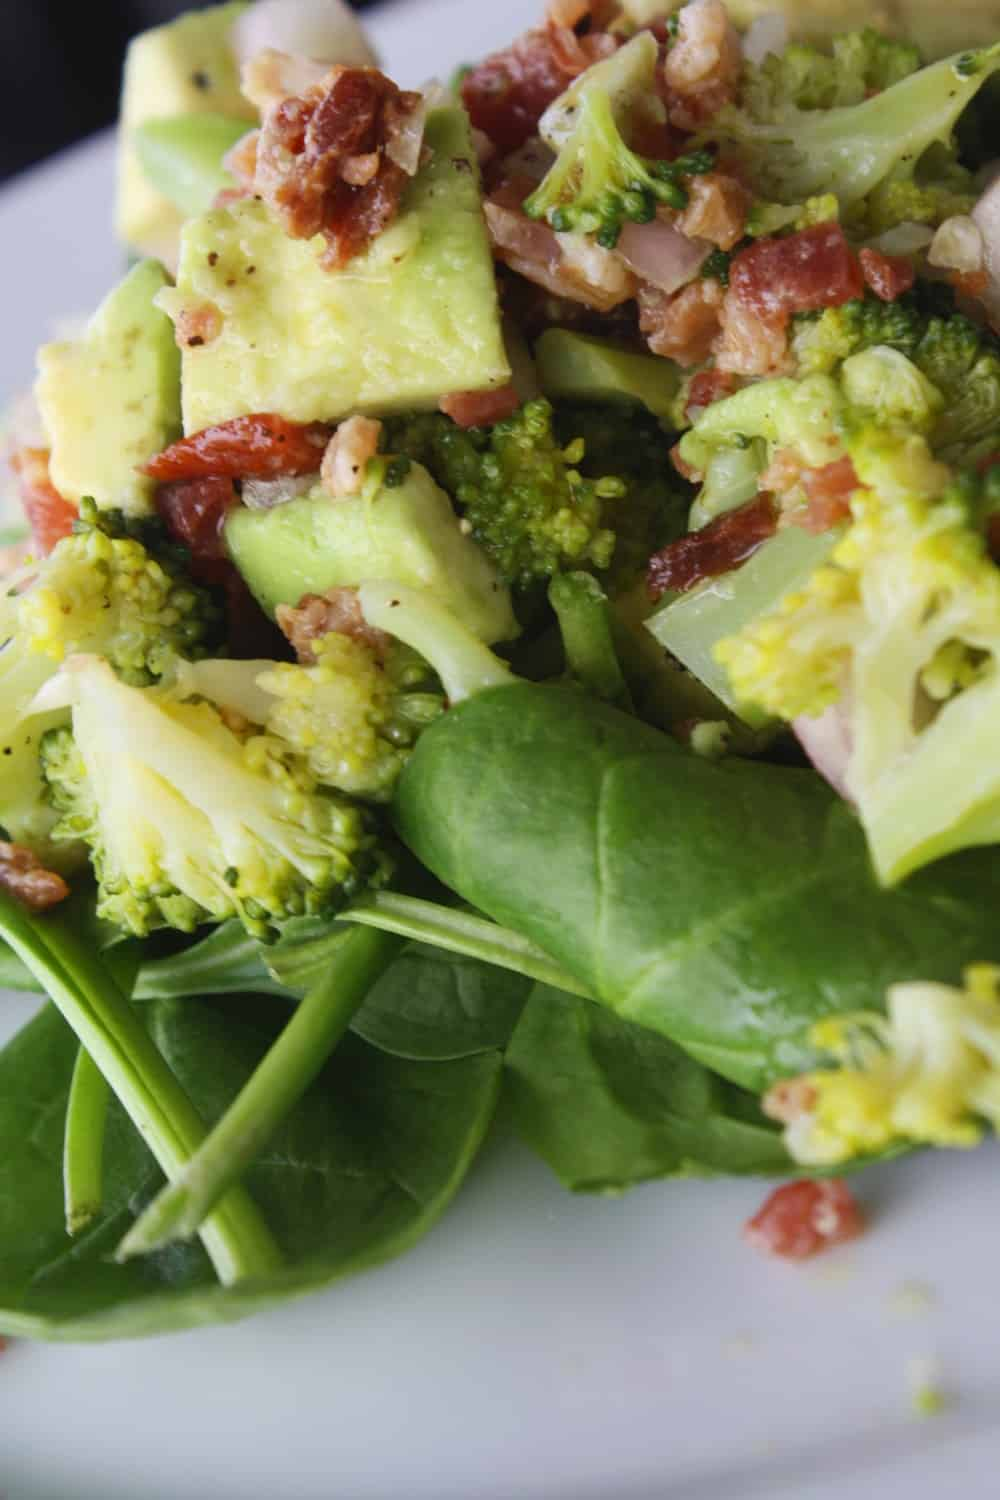 Warm Bacon and Broccoli Salad